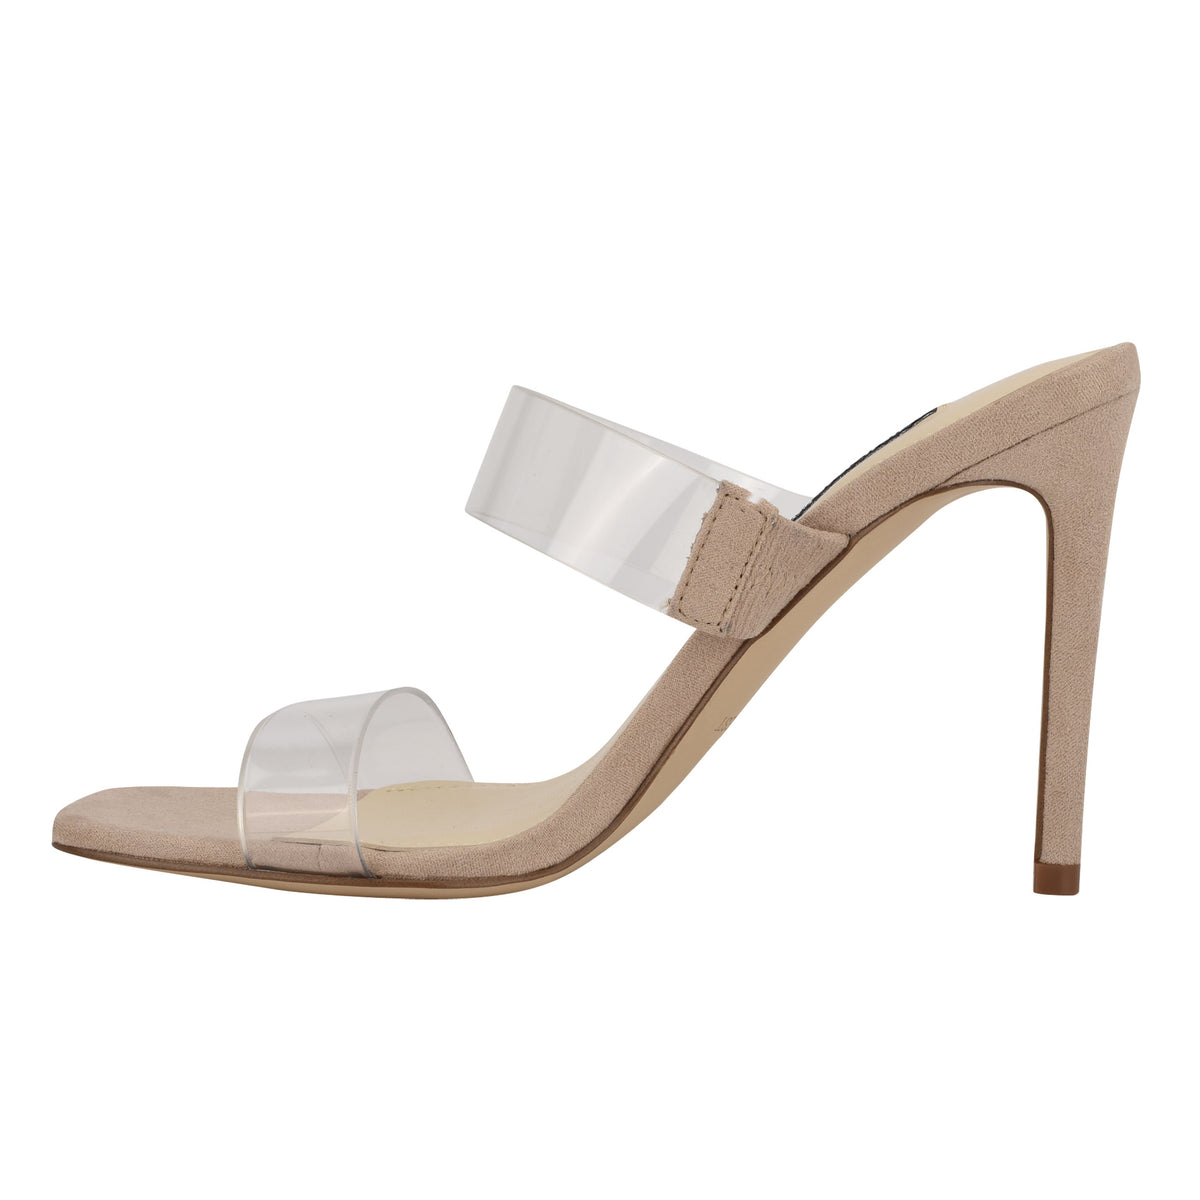 Zarley Heeled Slide Sandals